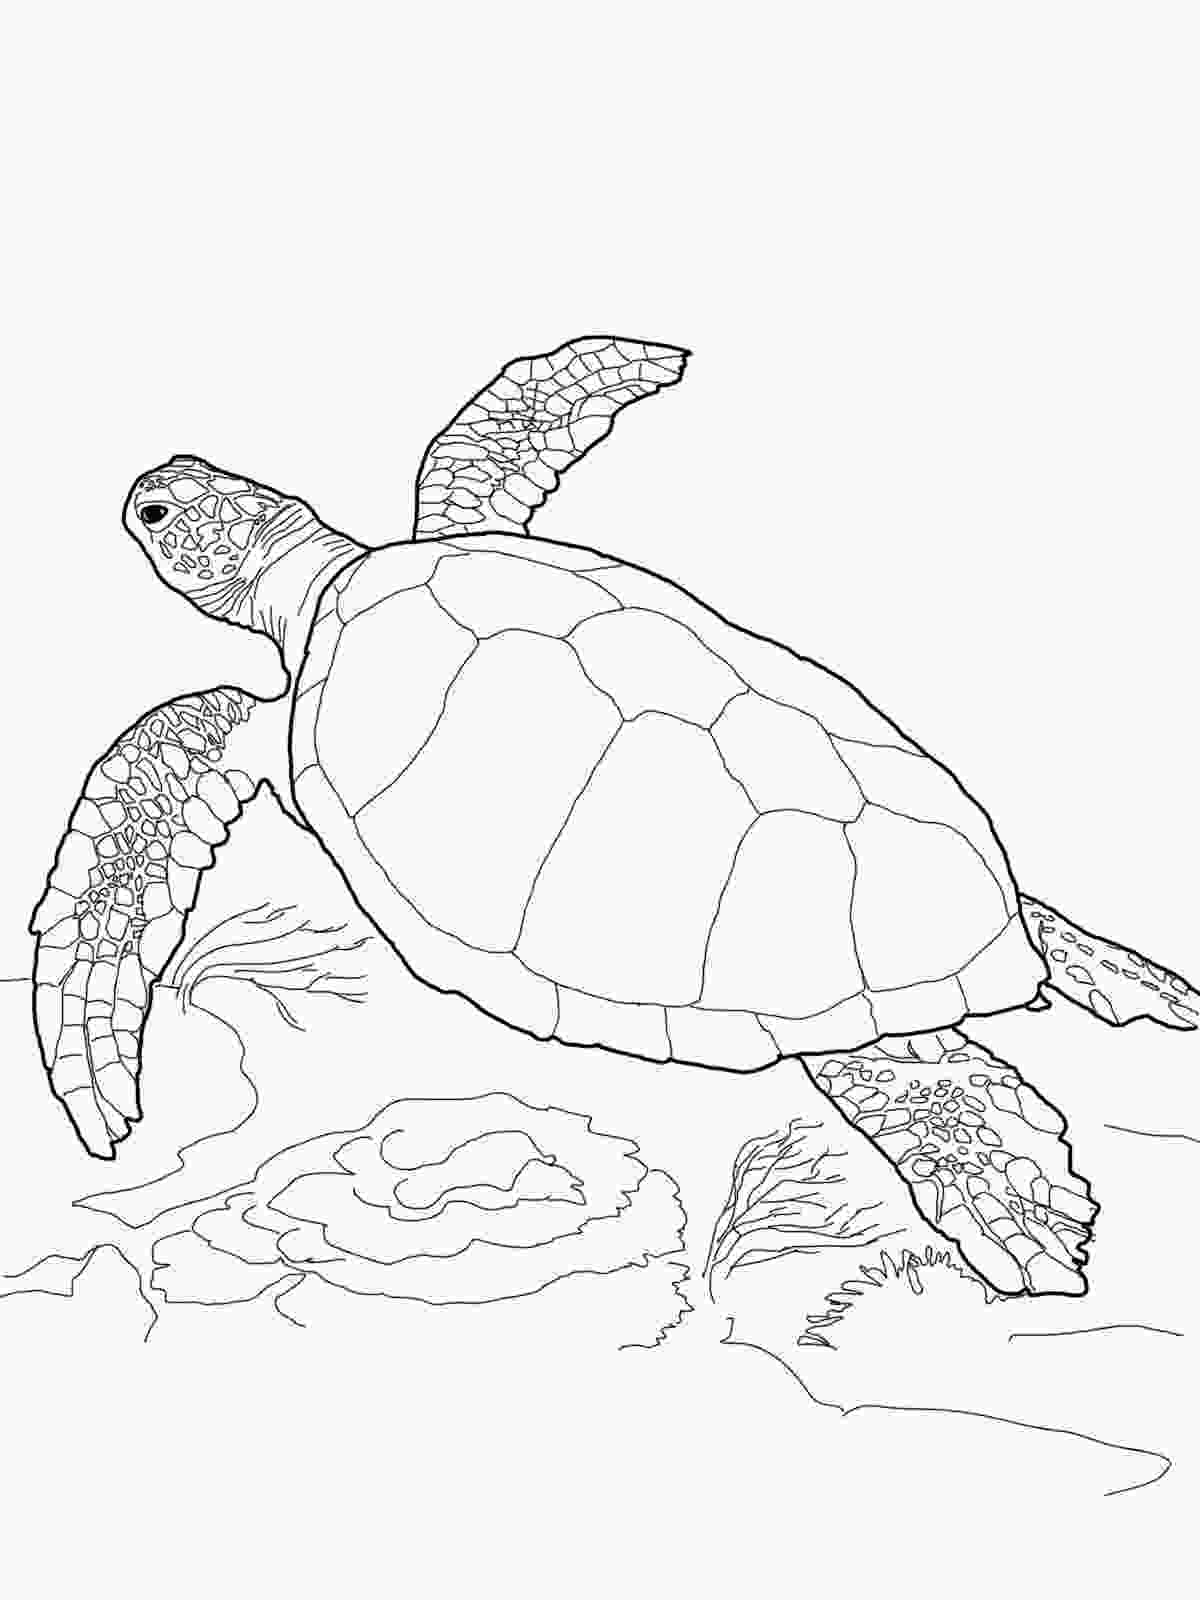 coloring page of turtle realistic turtle coloring pages